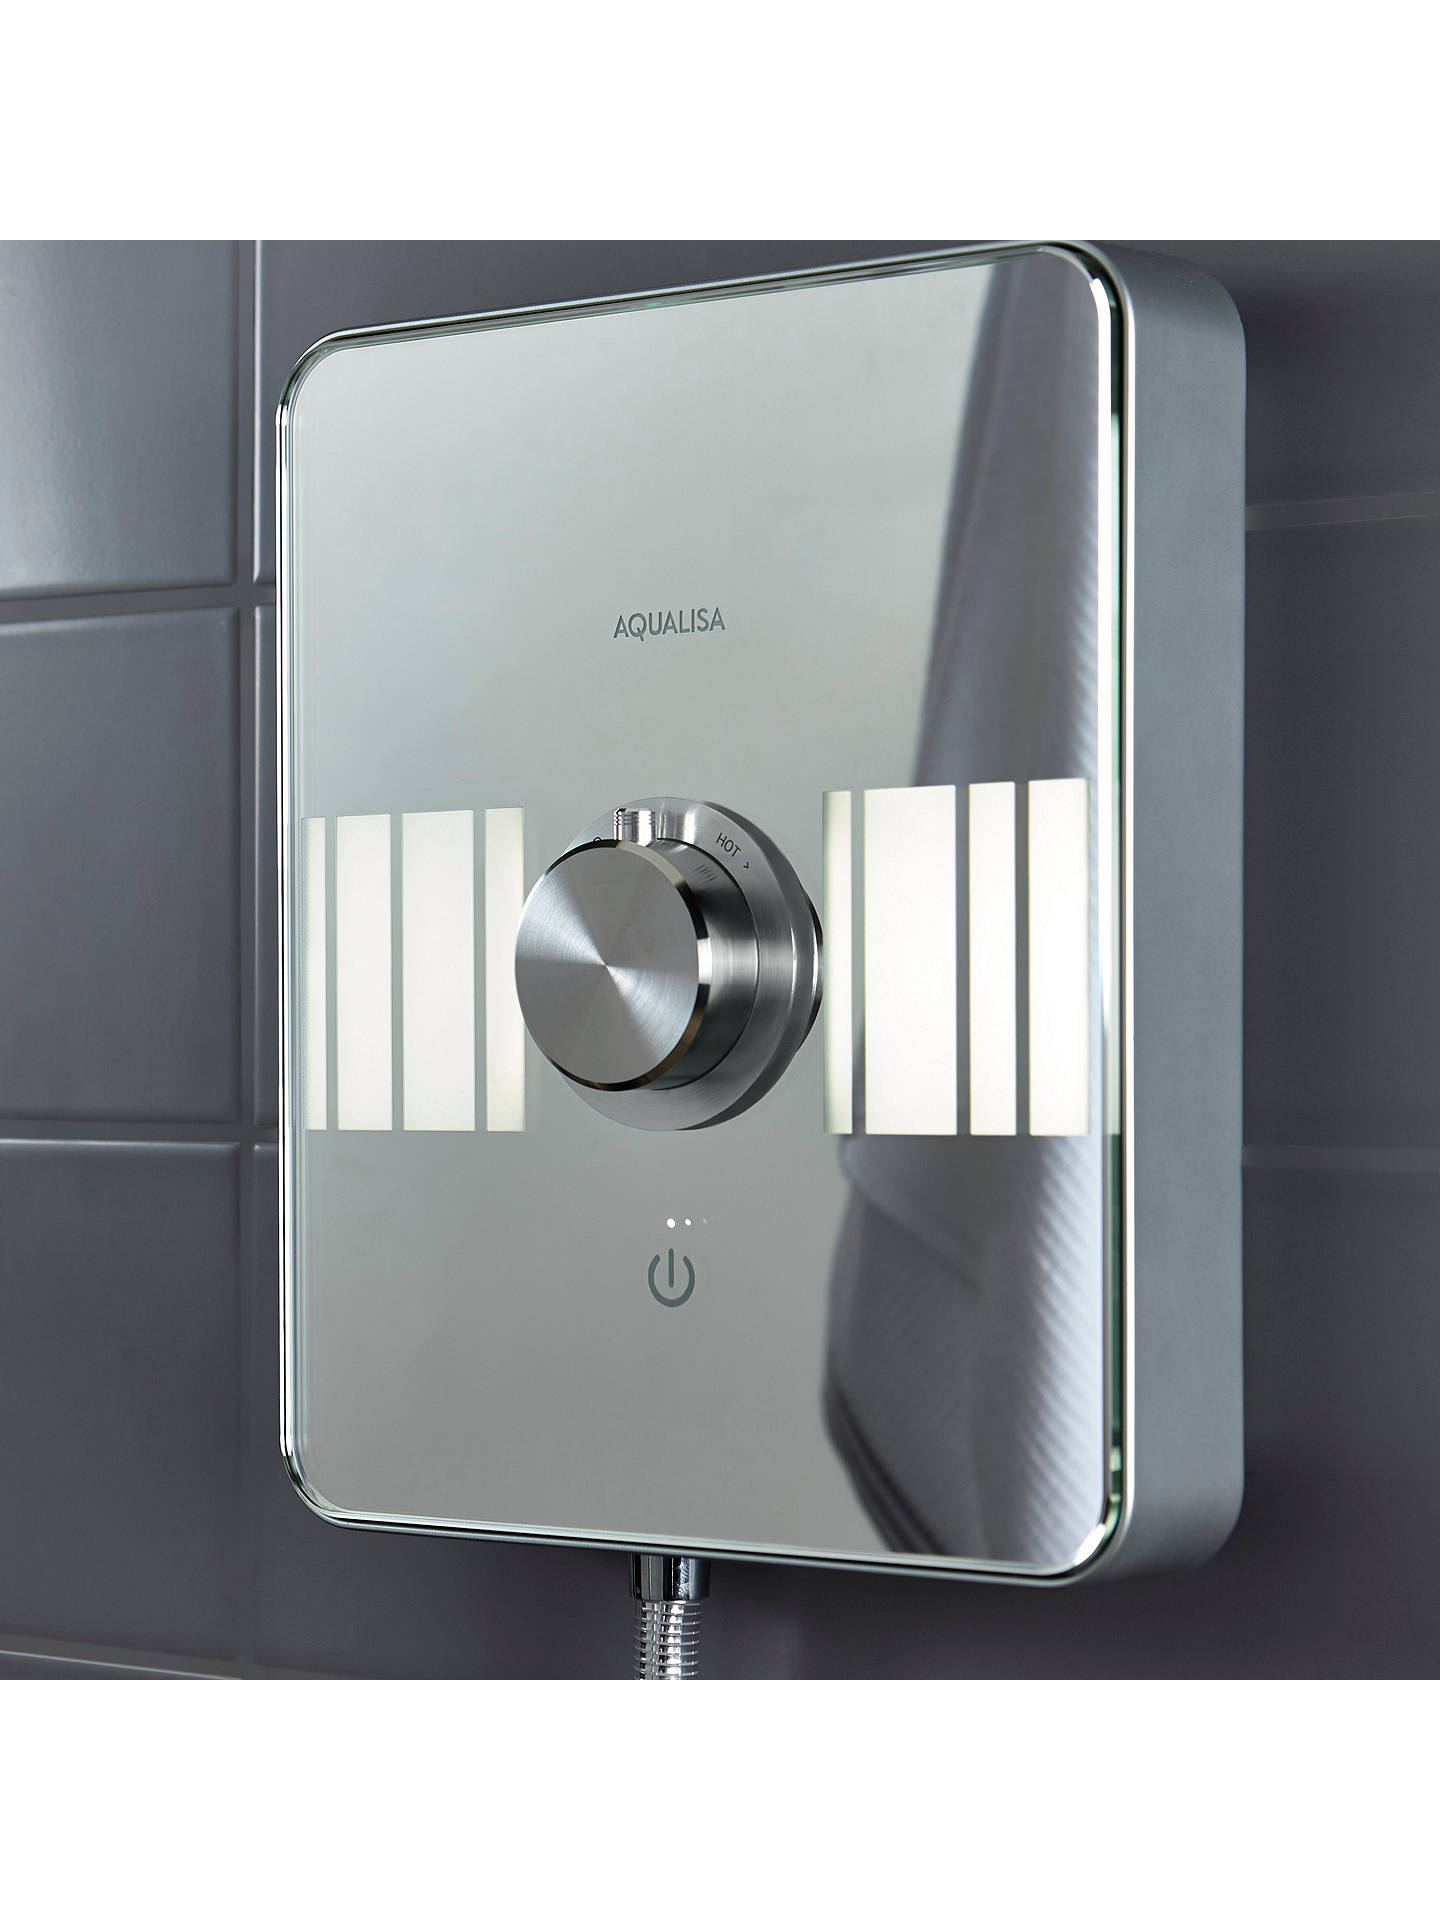 BuyAqualisa Lumi XT 10.5kW Electric Shower with Adjustable Head, Chrome Online at johnlewis.com